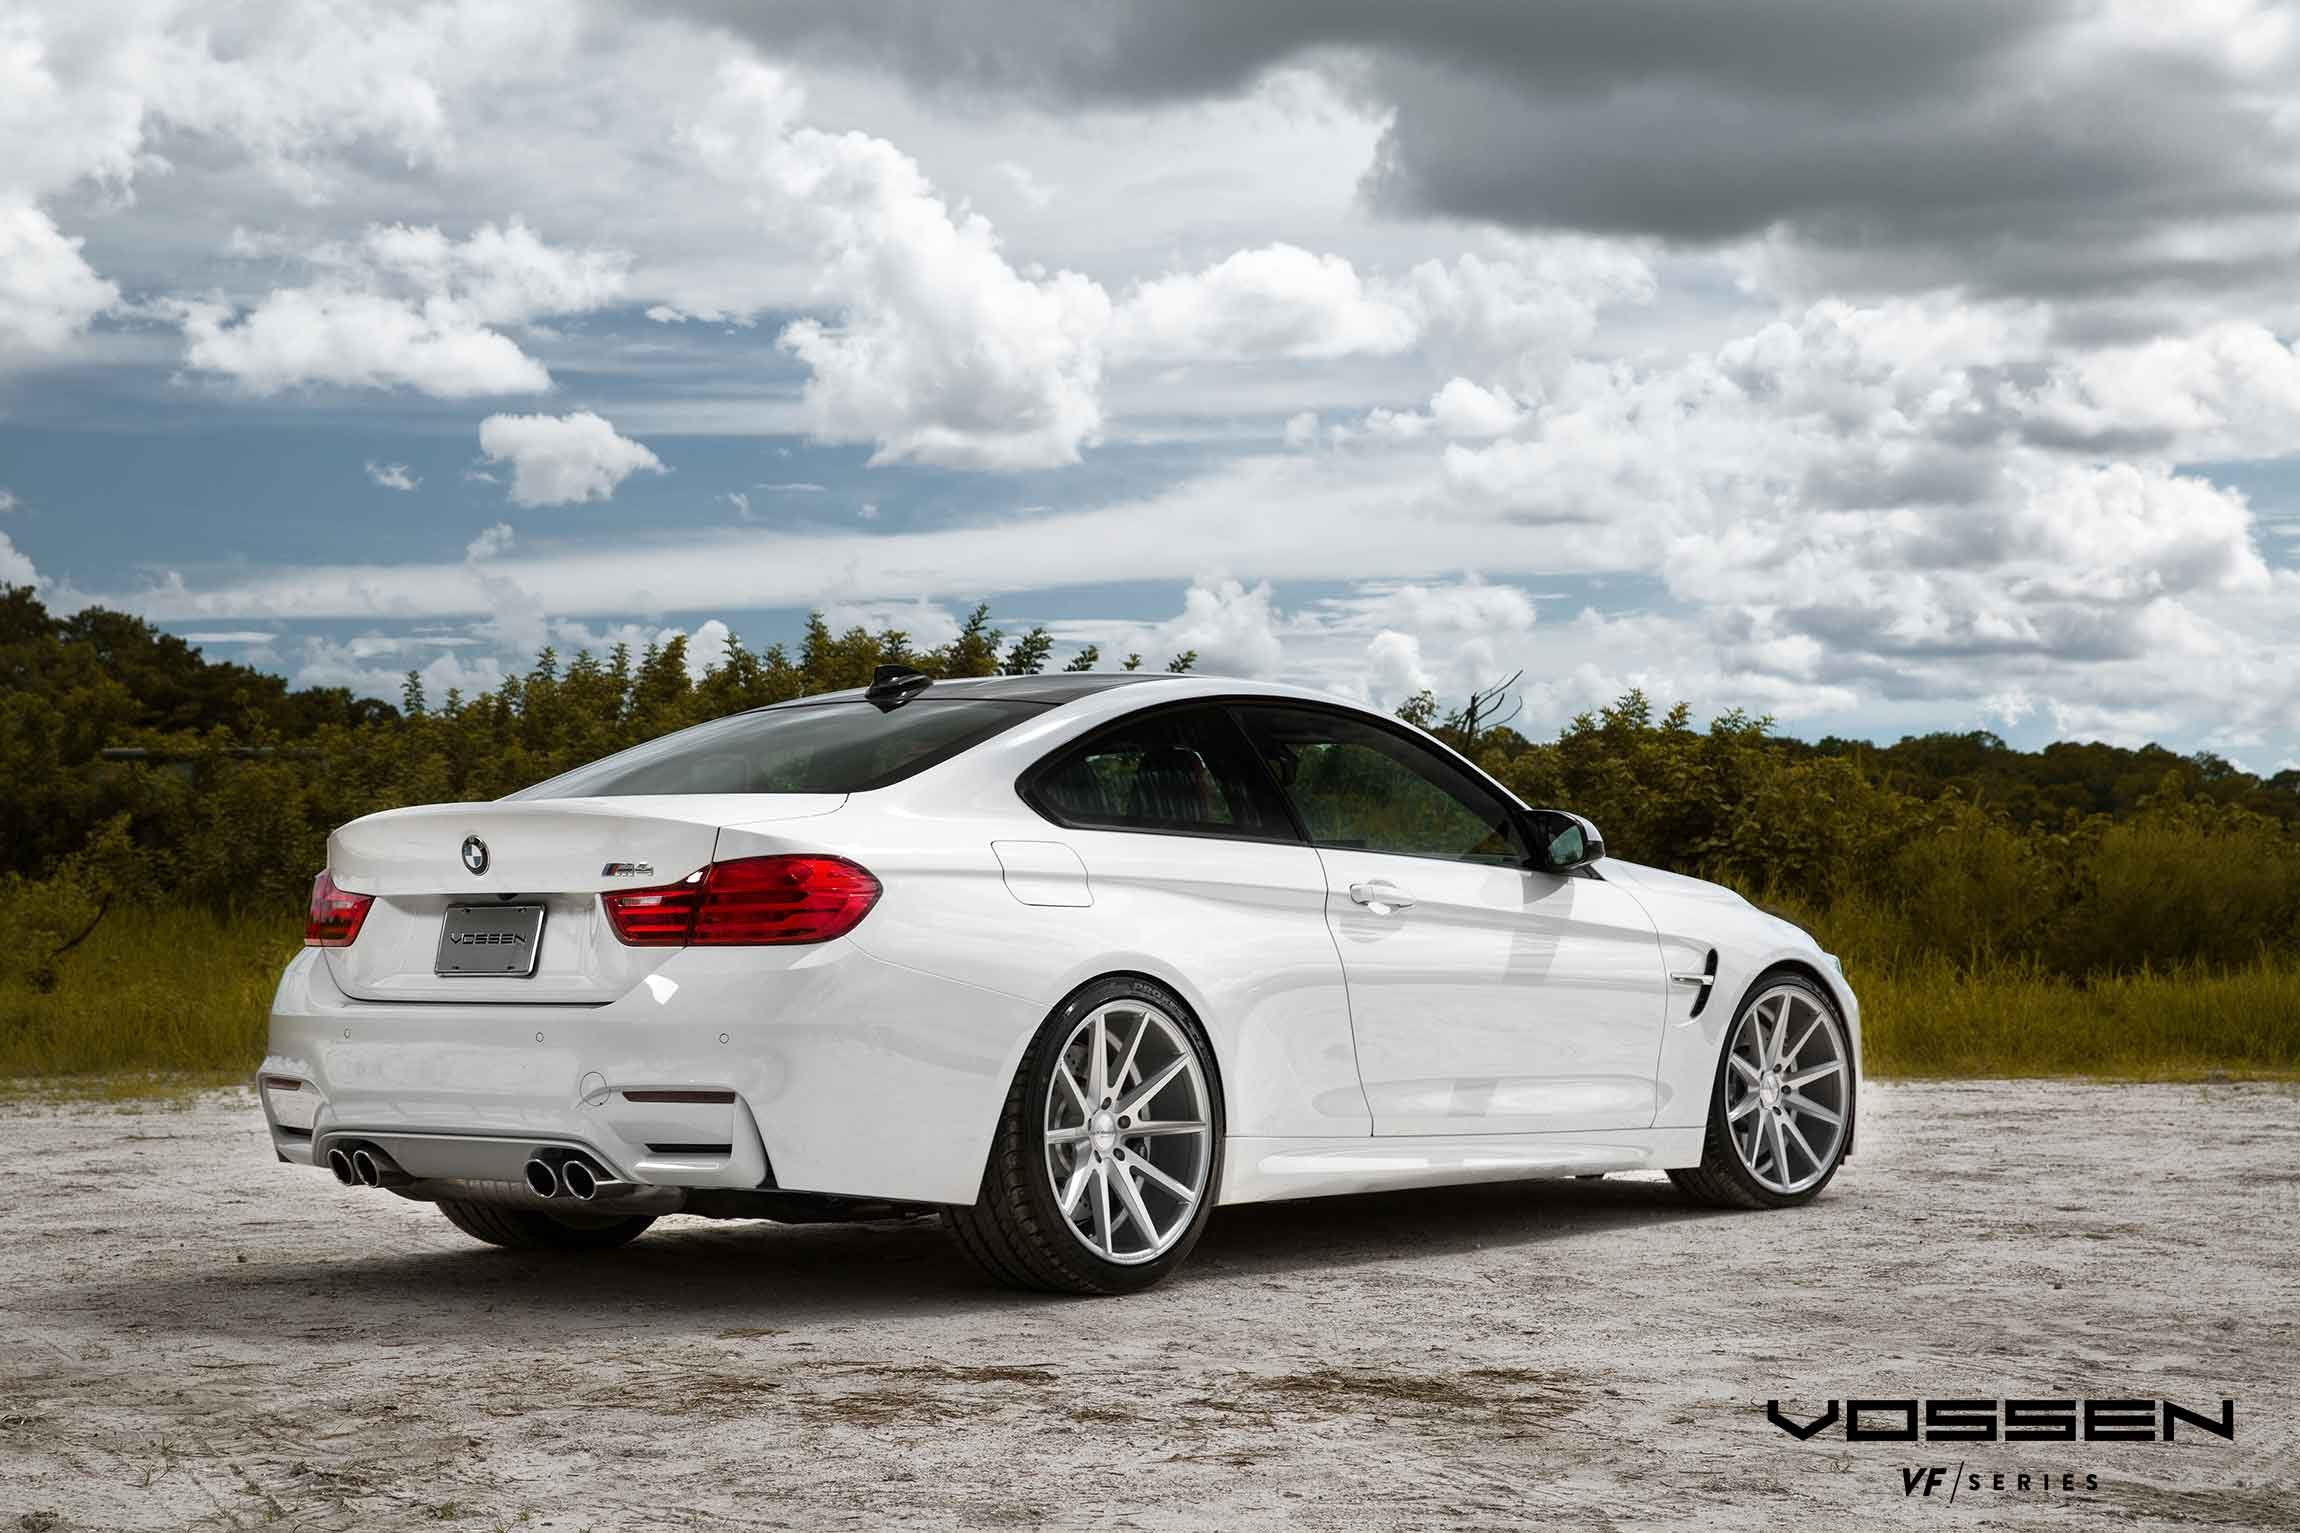 Vossen Wheels Bmw 4 Serie Coupe Tuning White Wallpaper